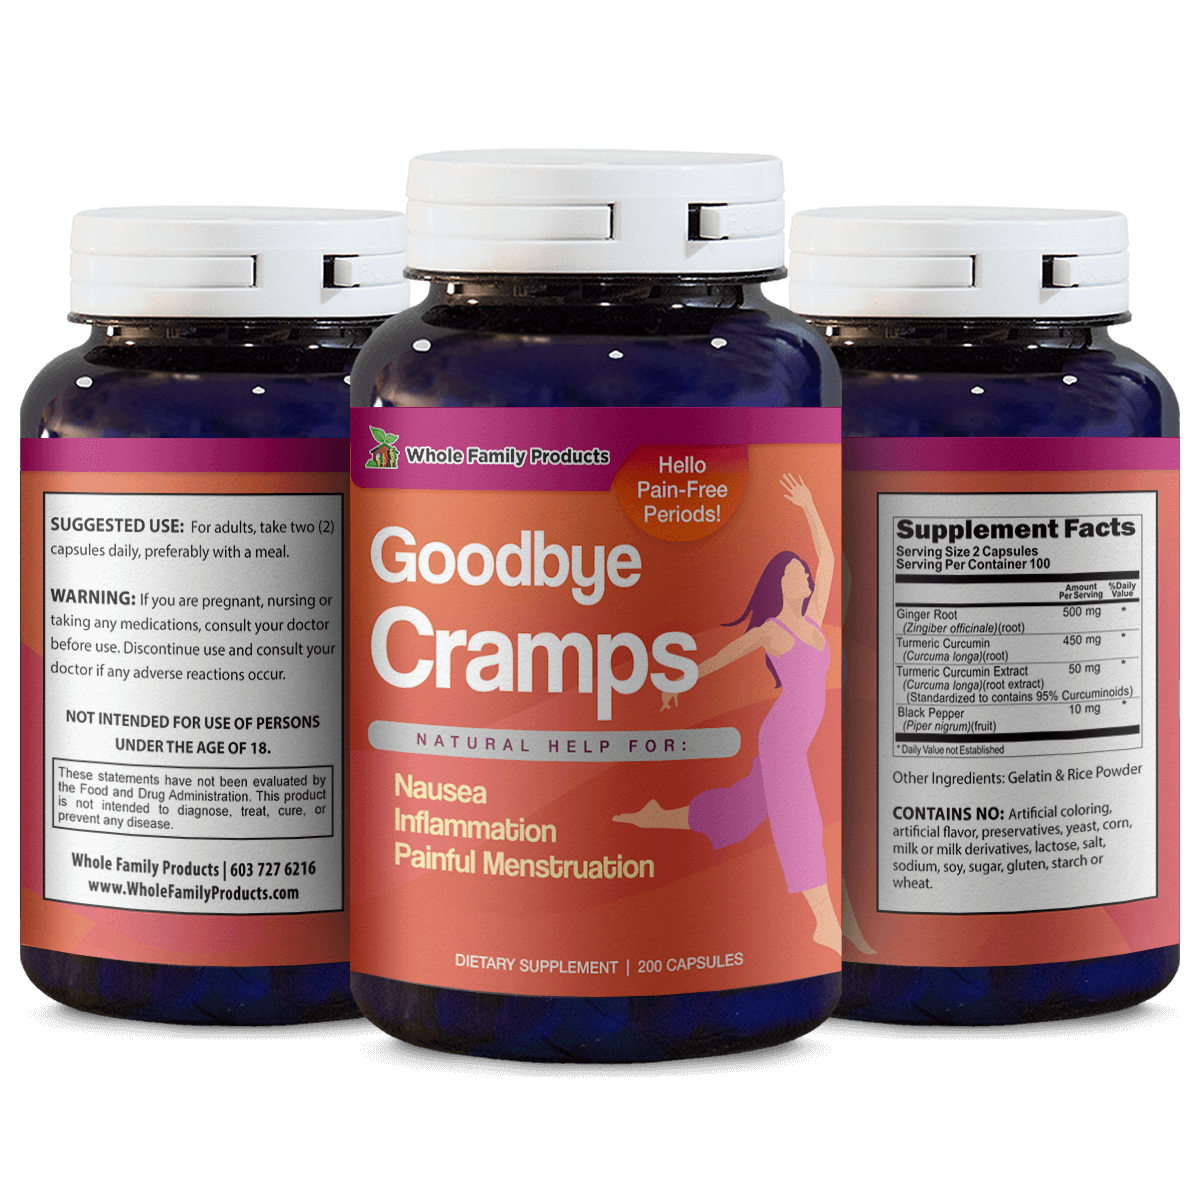 Goodbye Cramps Natural Help for Nausea and Inflammation